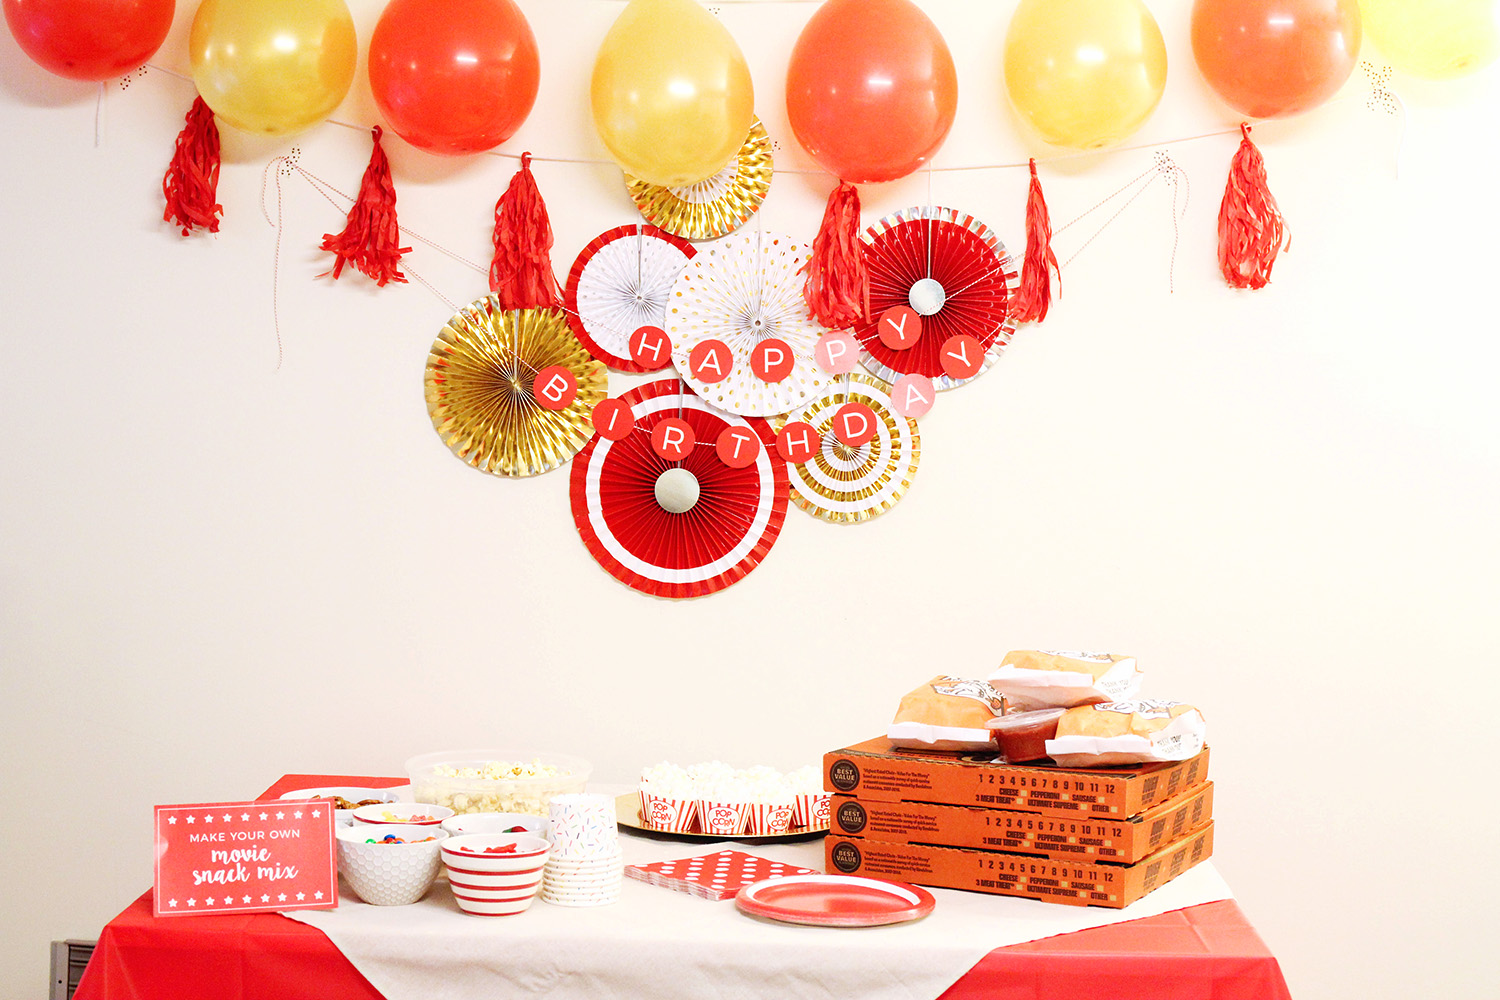 This popcorn and movie birthday party is perfect for tweens and teens! Simple and easy decorations, food, and fun!